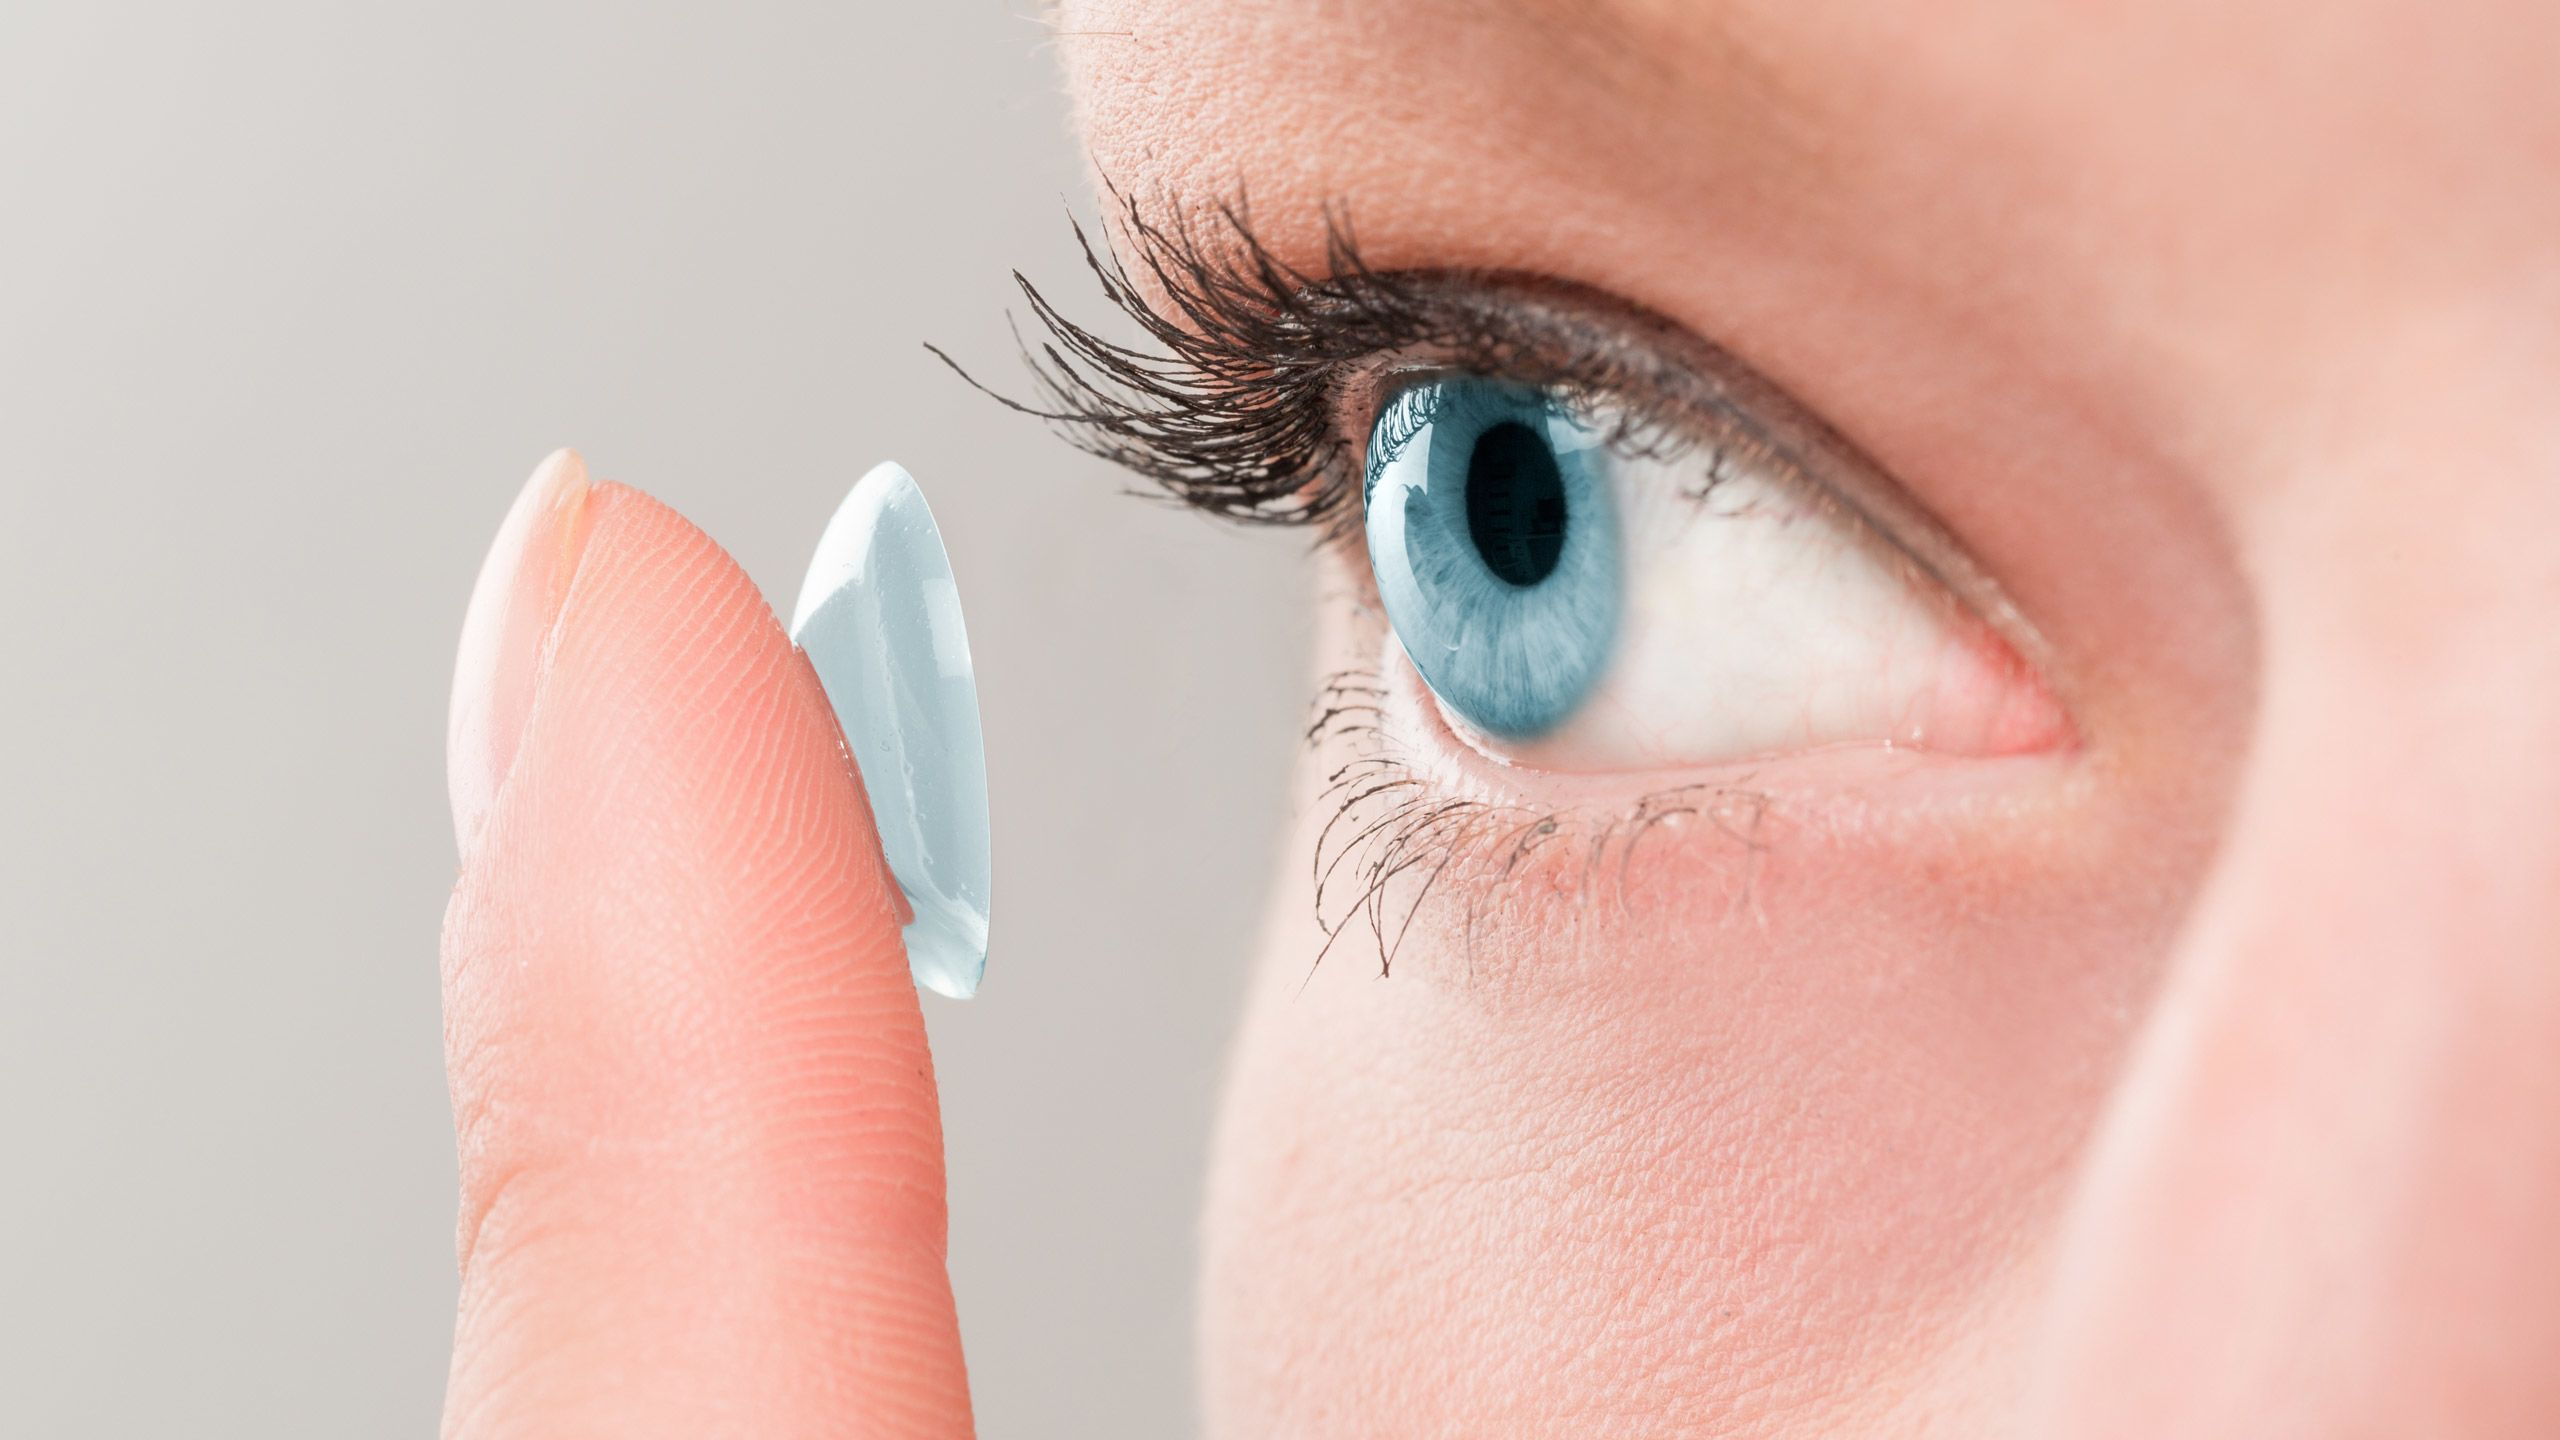 6 Contact Lens Mistakes You're Probably Making—And How to Fix Them